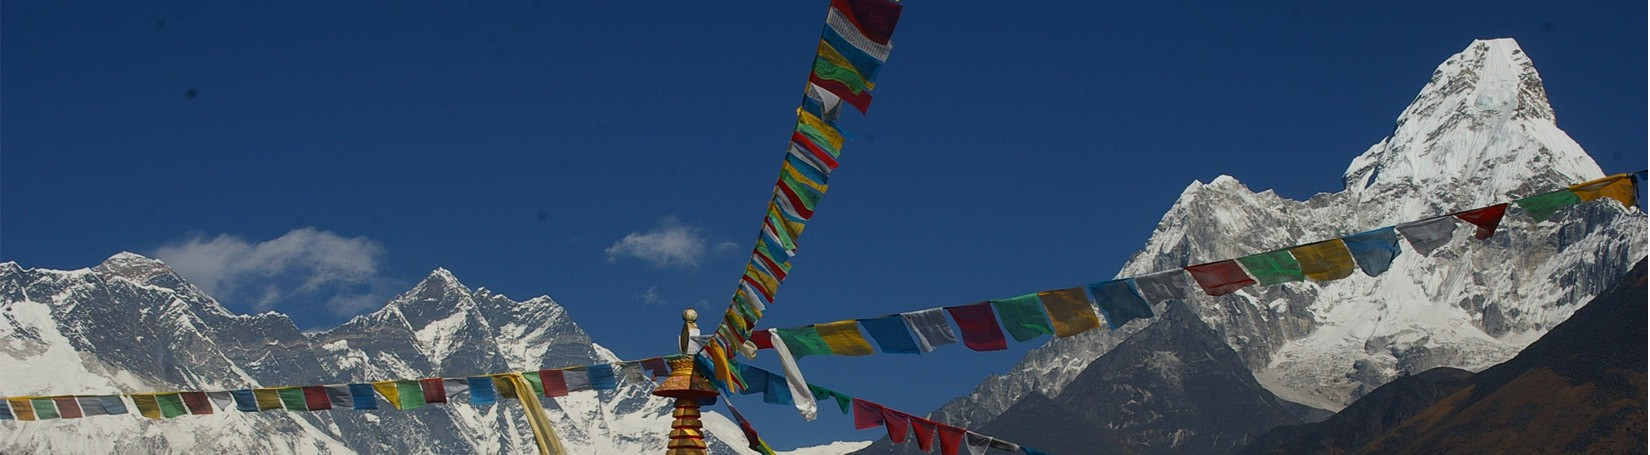 Mt Everest and Amadablam from Tengboche